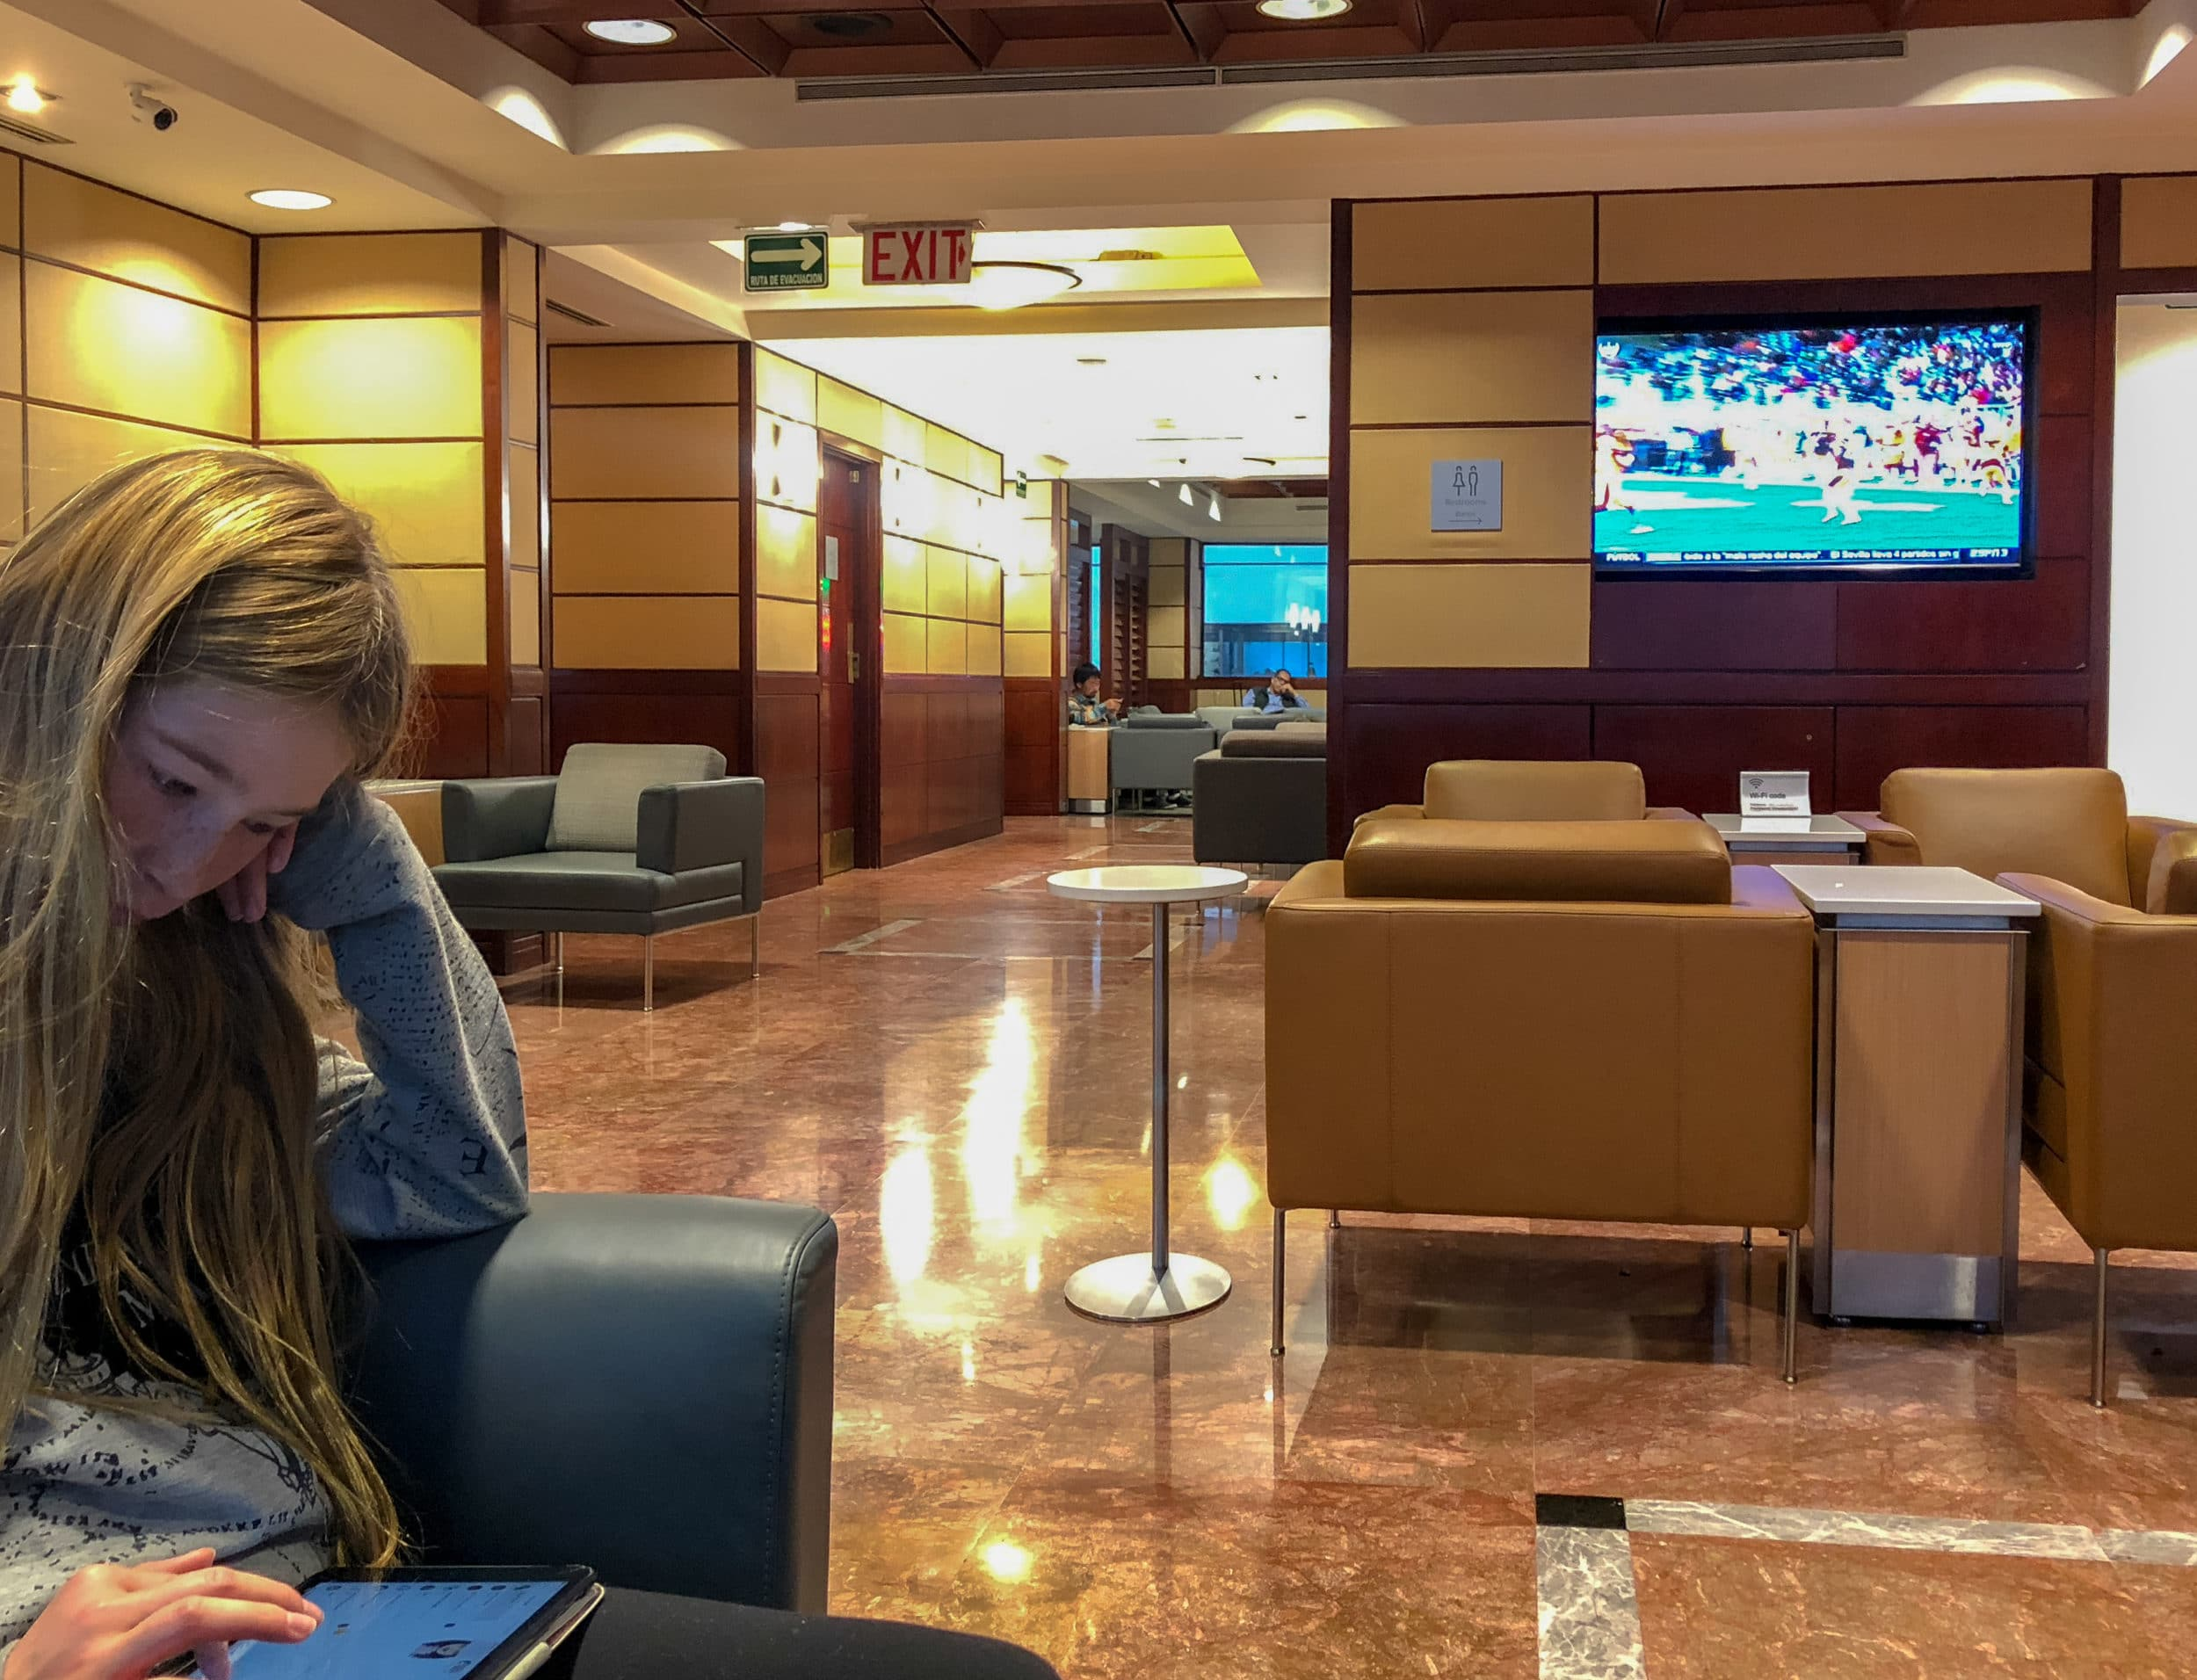 Mexico City airport lounges: American Airlines Admirals Club